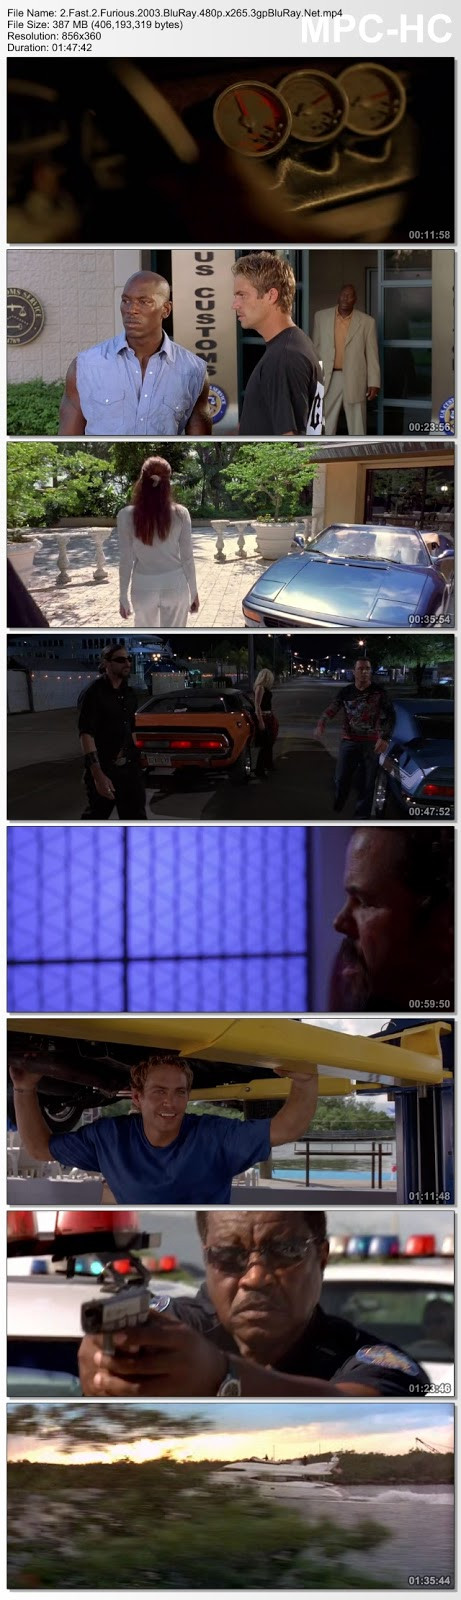 Screenshots Download 2.Fast.2.Furious.2003.BluRay.480p.x265.3gpBluRay.Net.mp4